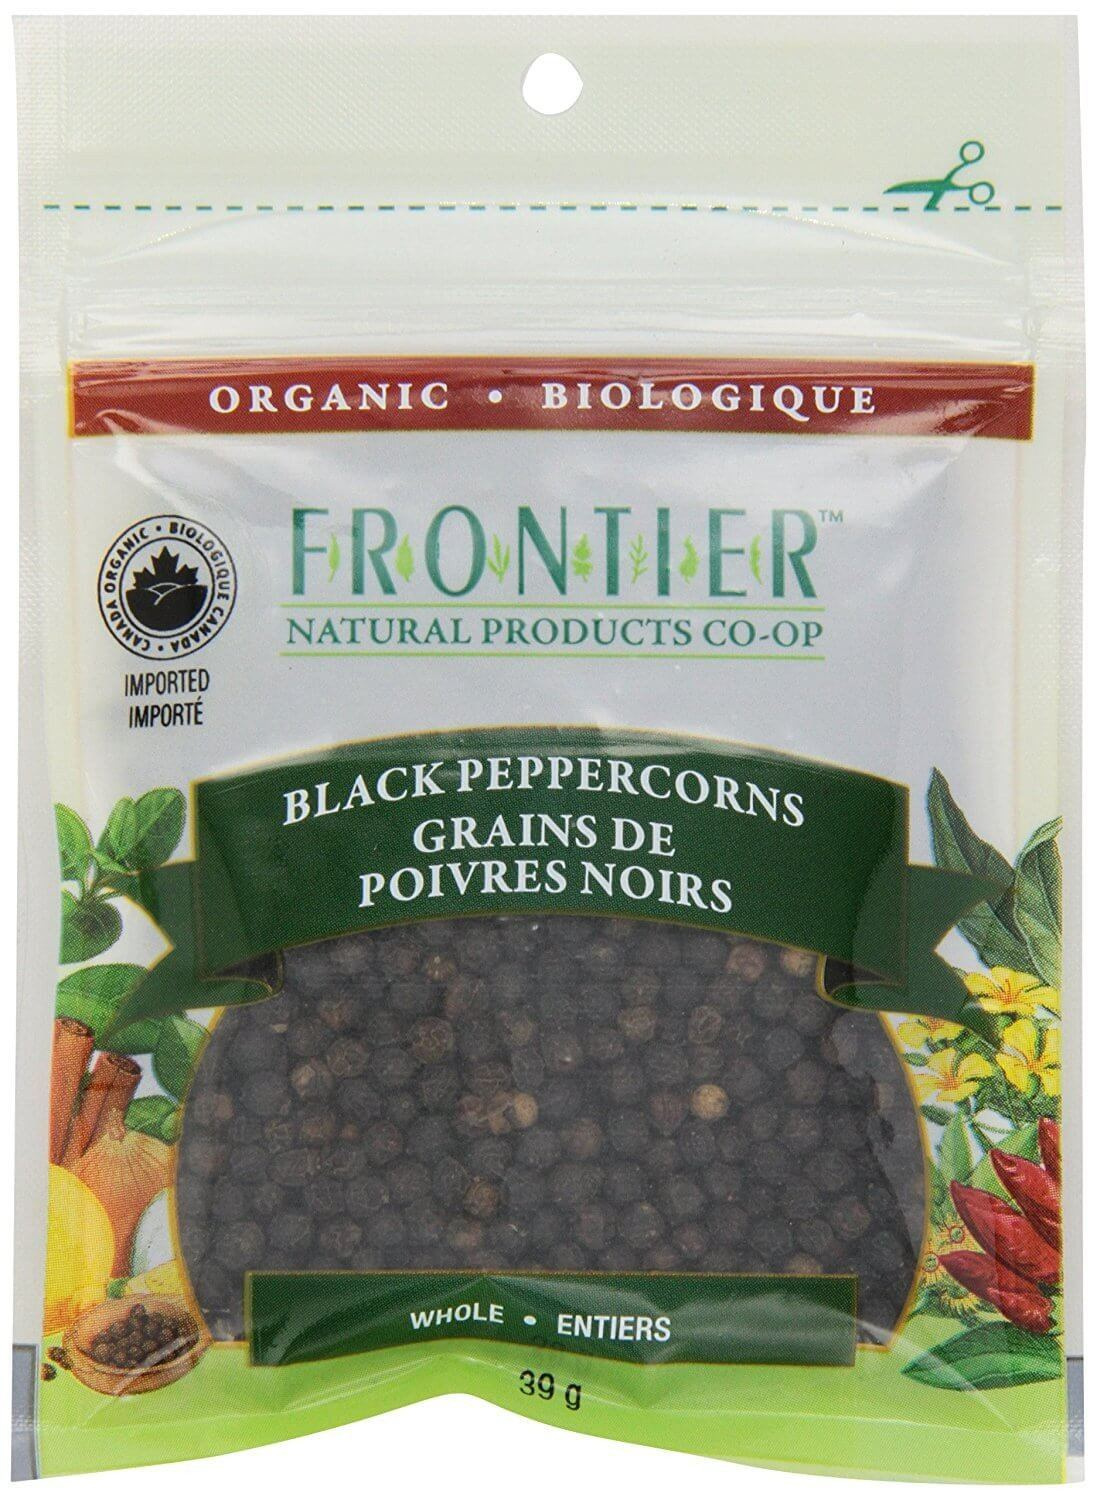 Food & Drink - Frontier Co-Op - Organic Whole Black Peppercorns, 39g